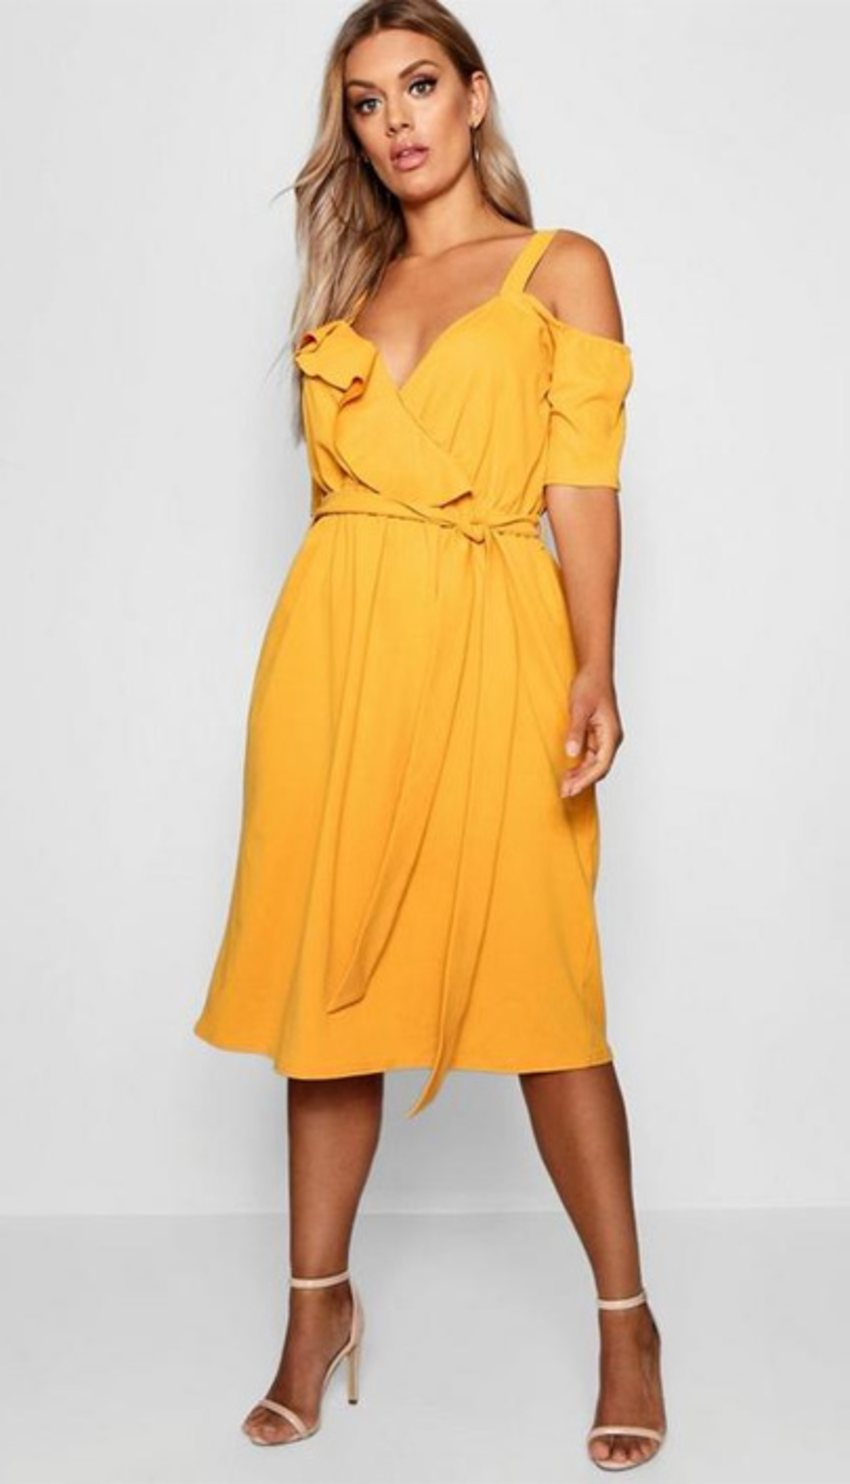 ruffle-midi-dress-for-big-stomach-issues